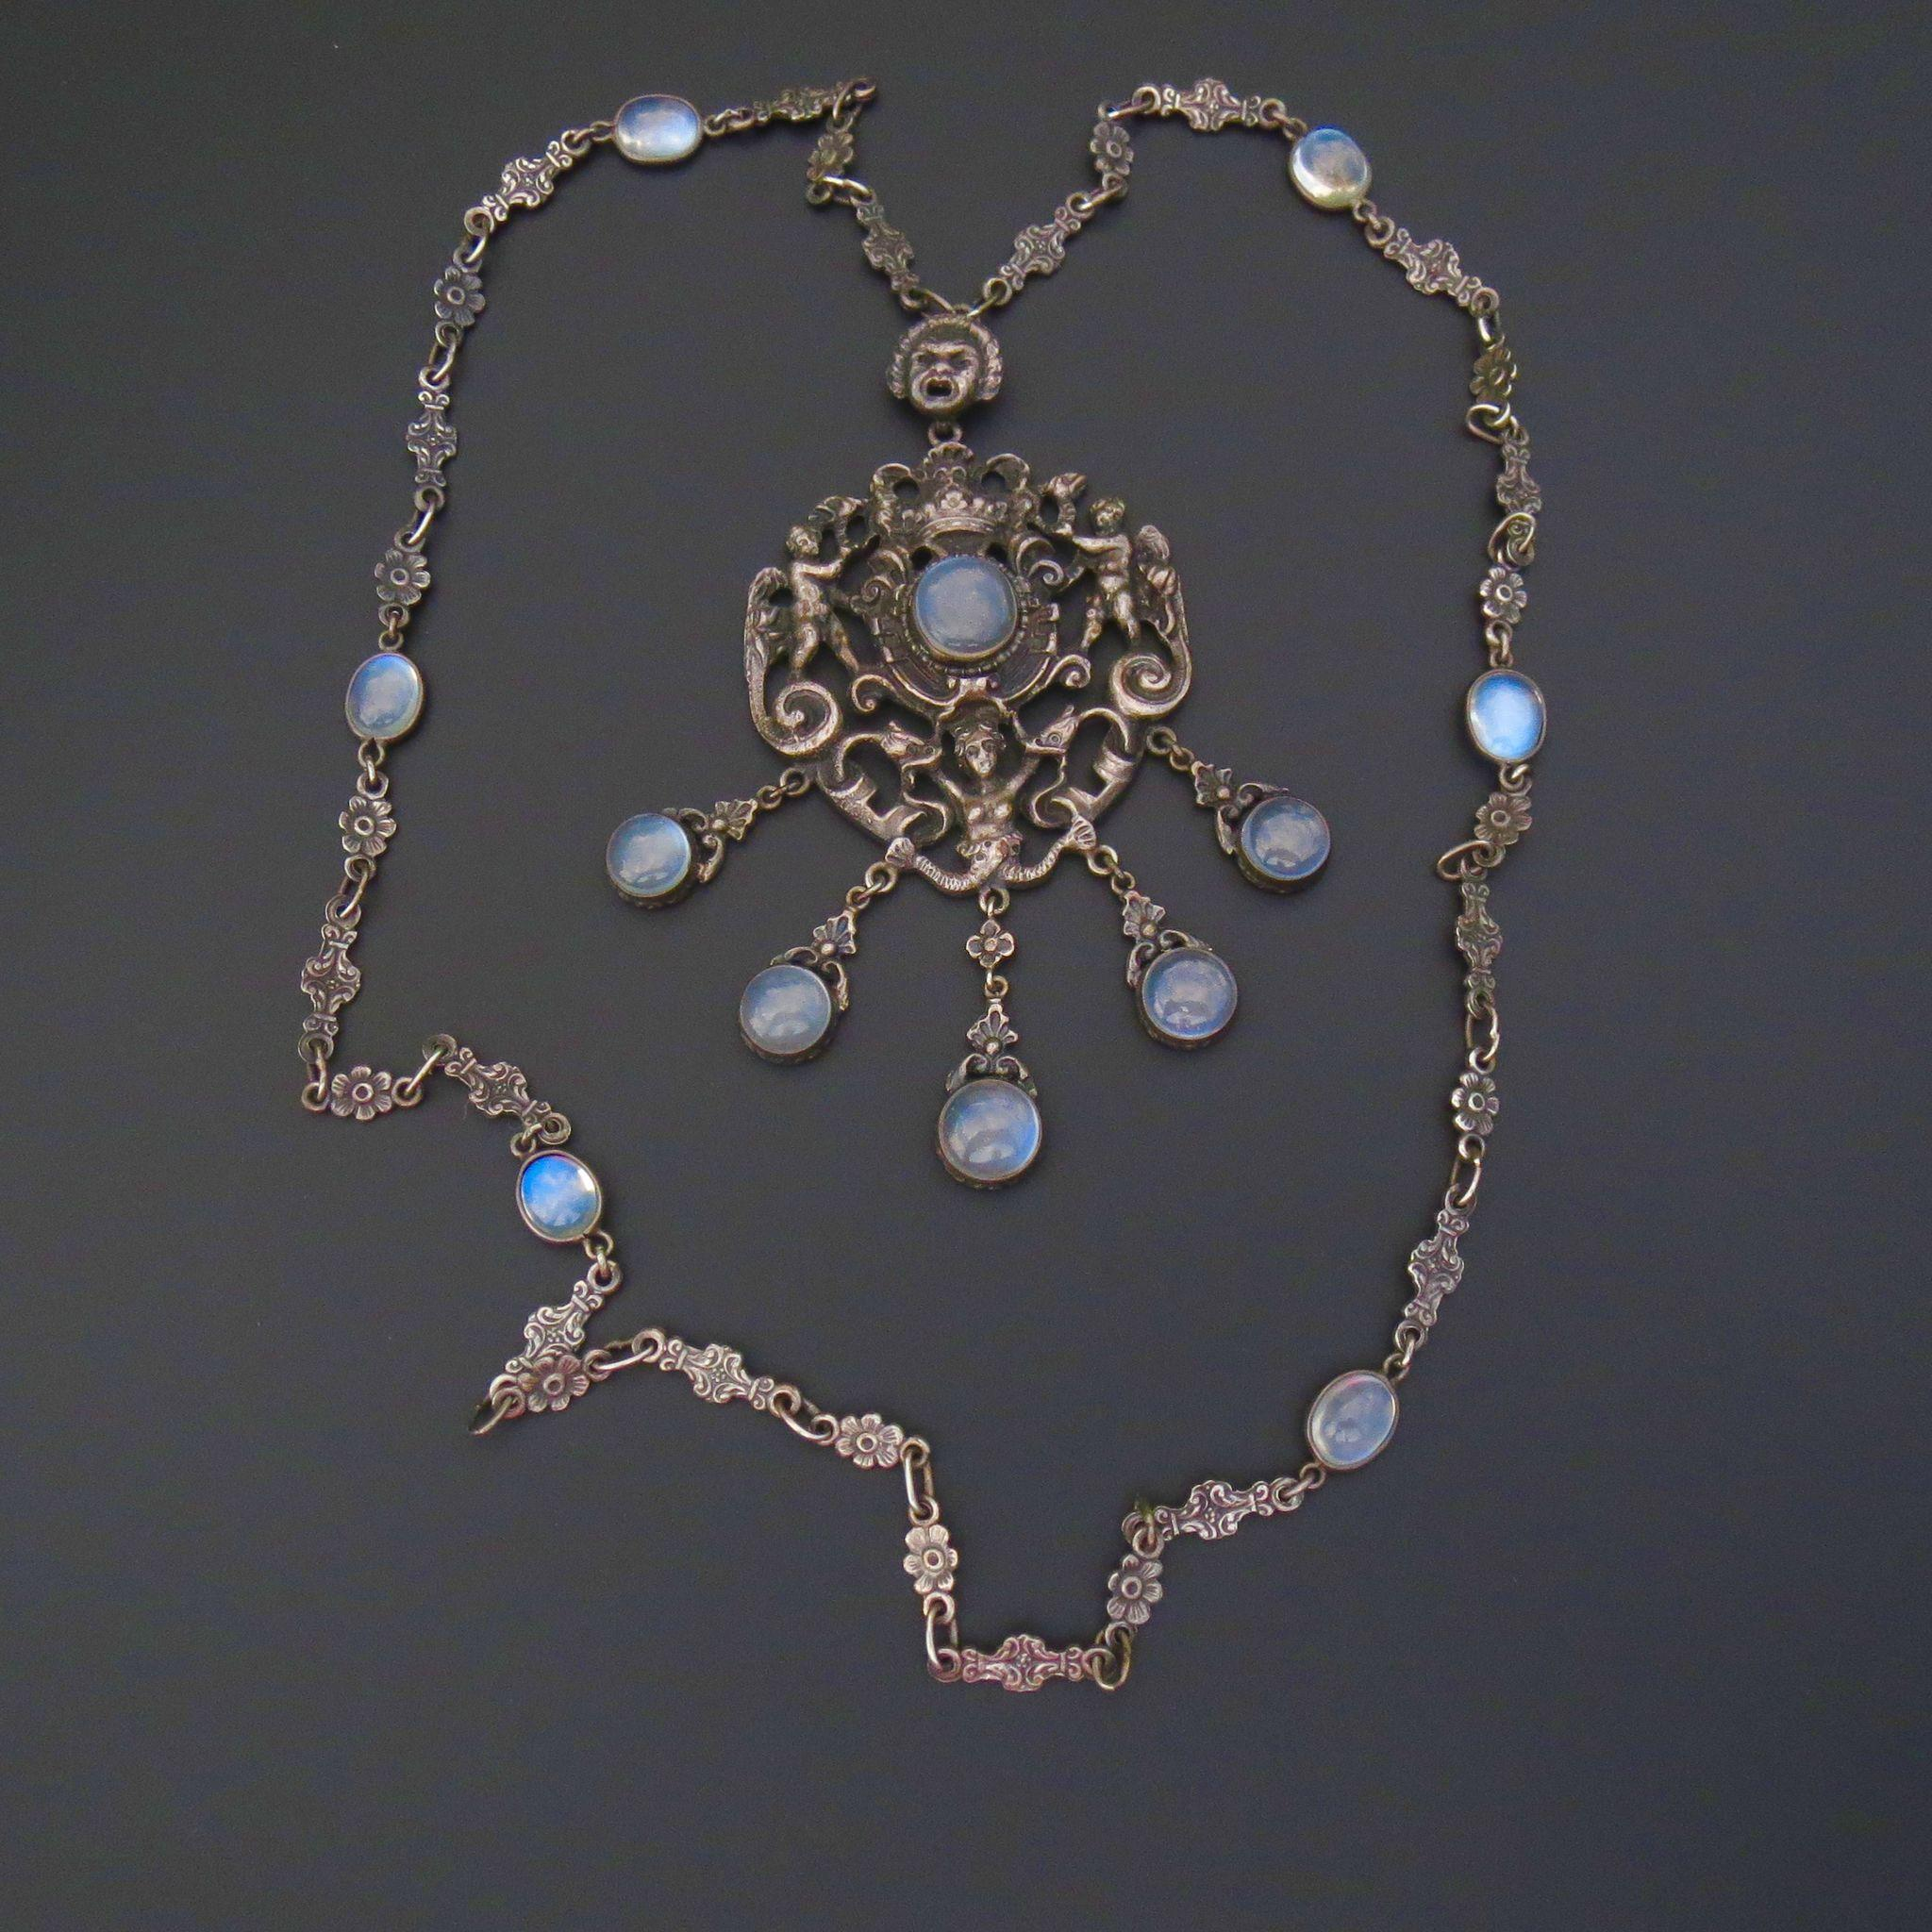 Art Nouveau Moonstone Necklace - Peruzzi - Fine Sterling